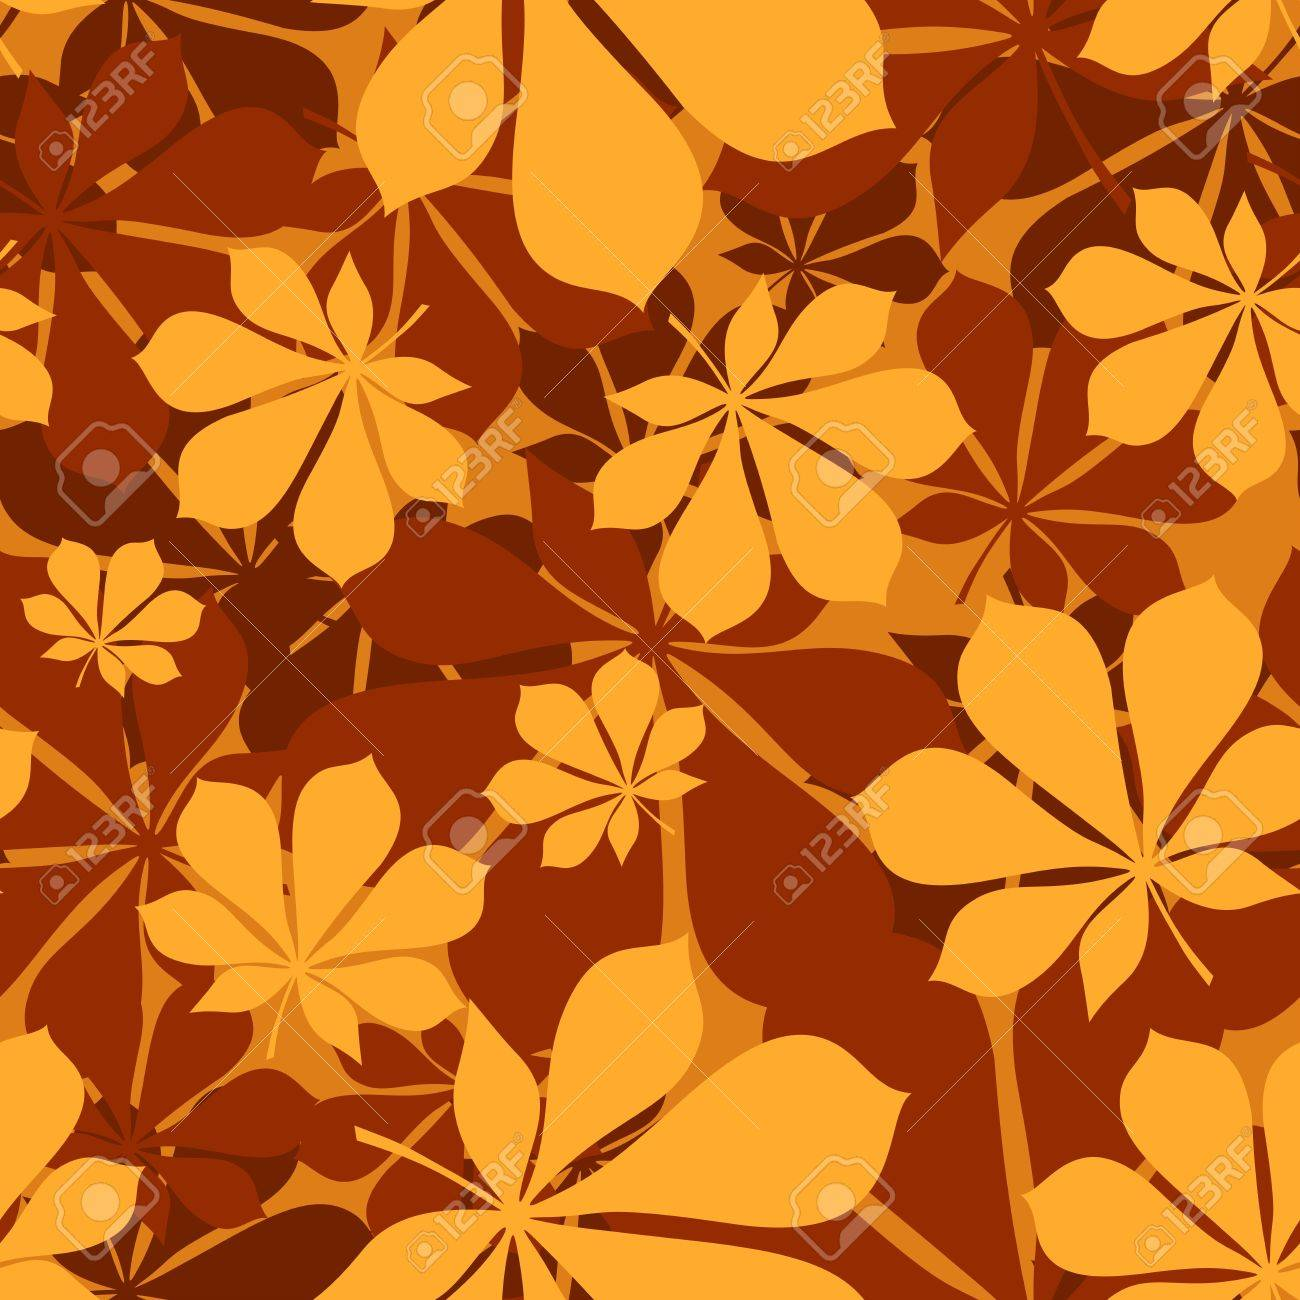 Seamless pattern with autumn chestnut leaves. Vector illustration. Stock Vector - 18259509